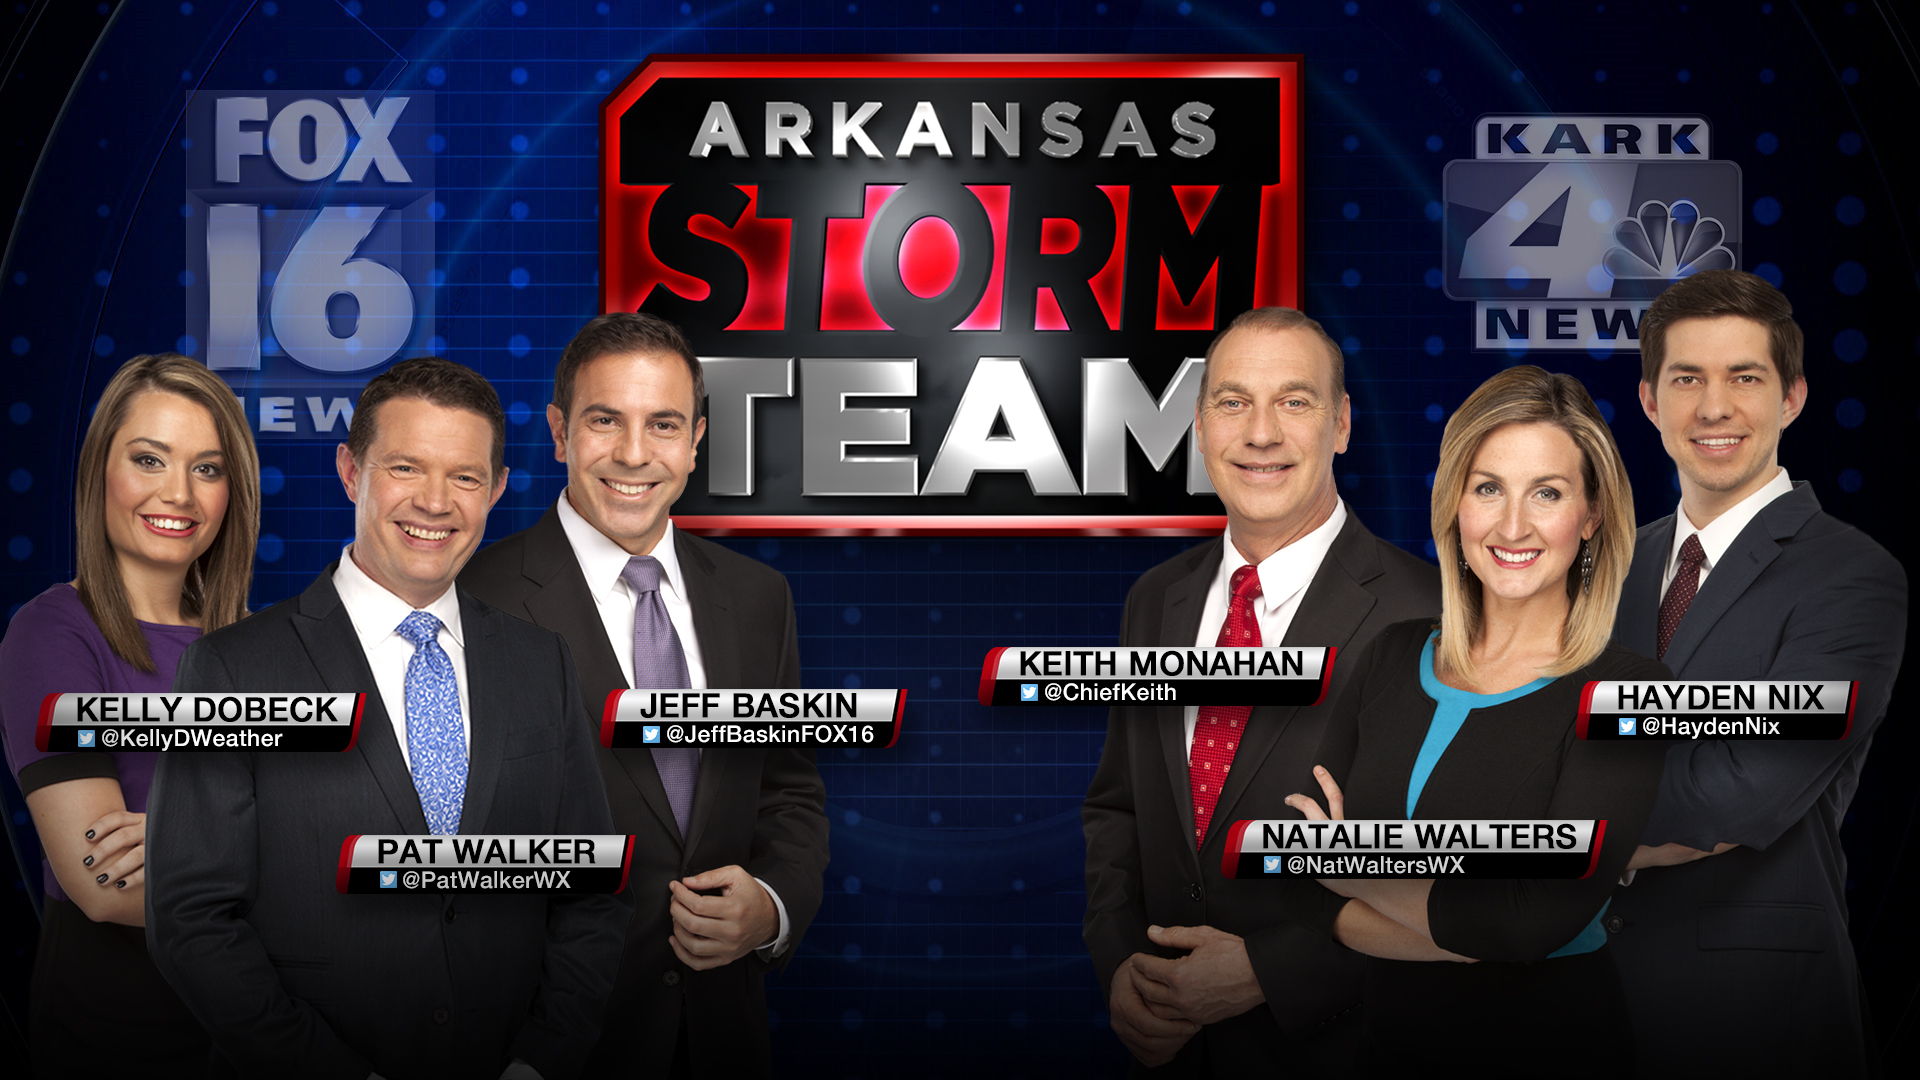 AR Storm Team Takes Weather Radios Campaign to Russellville